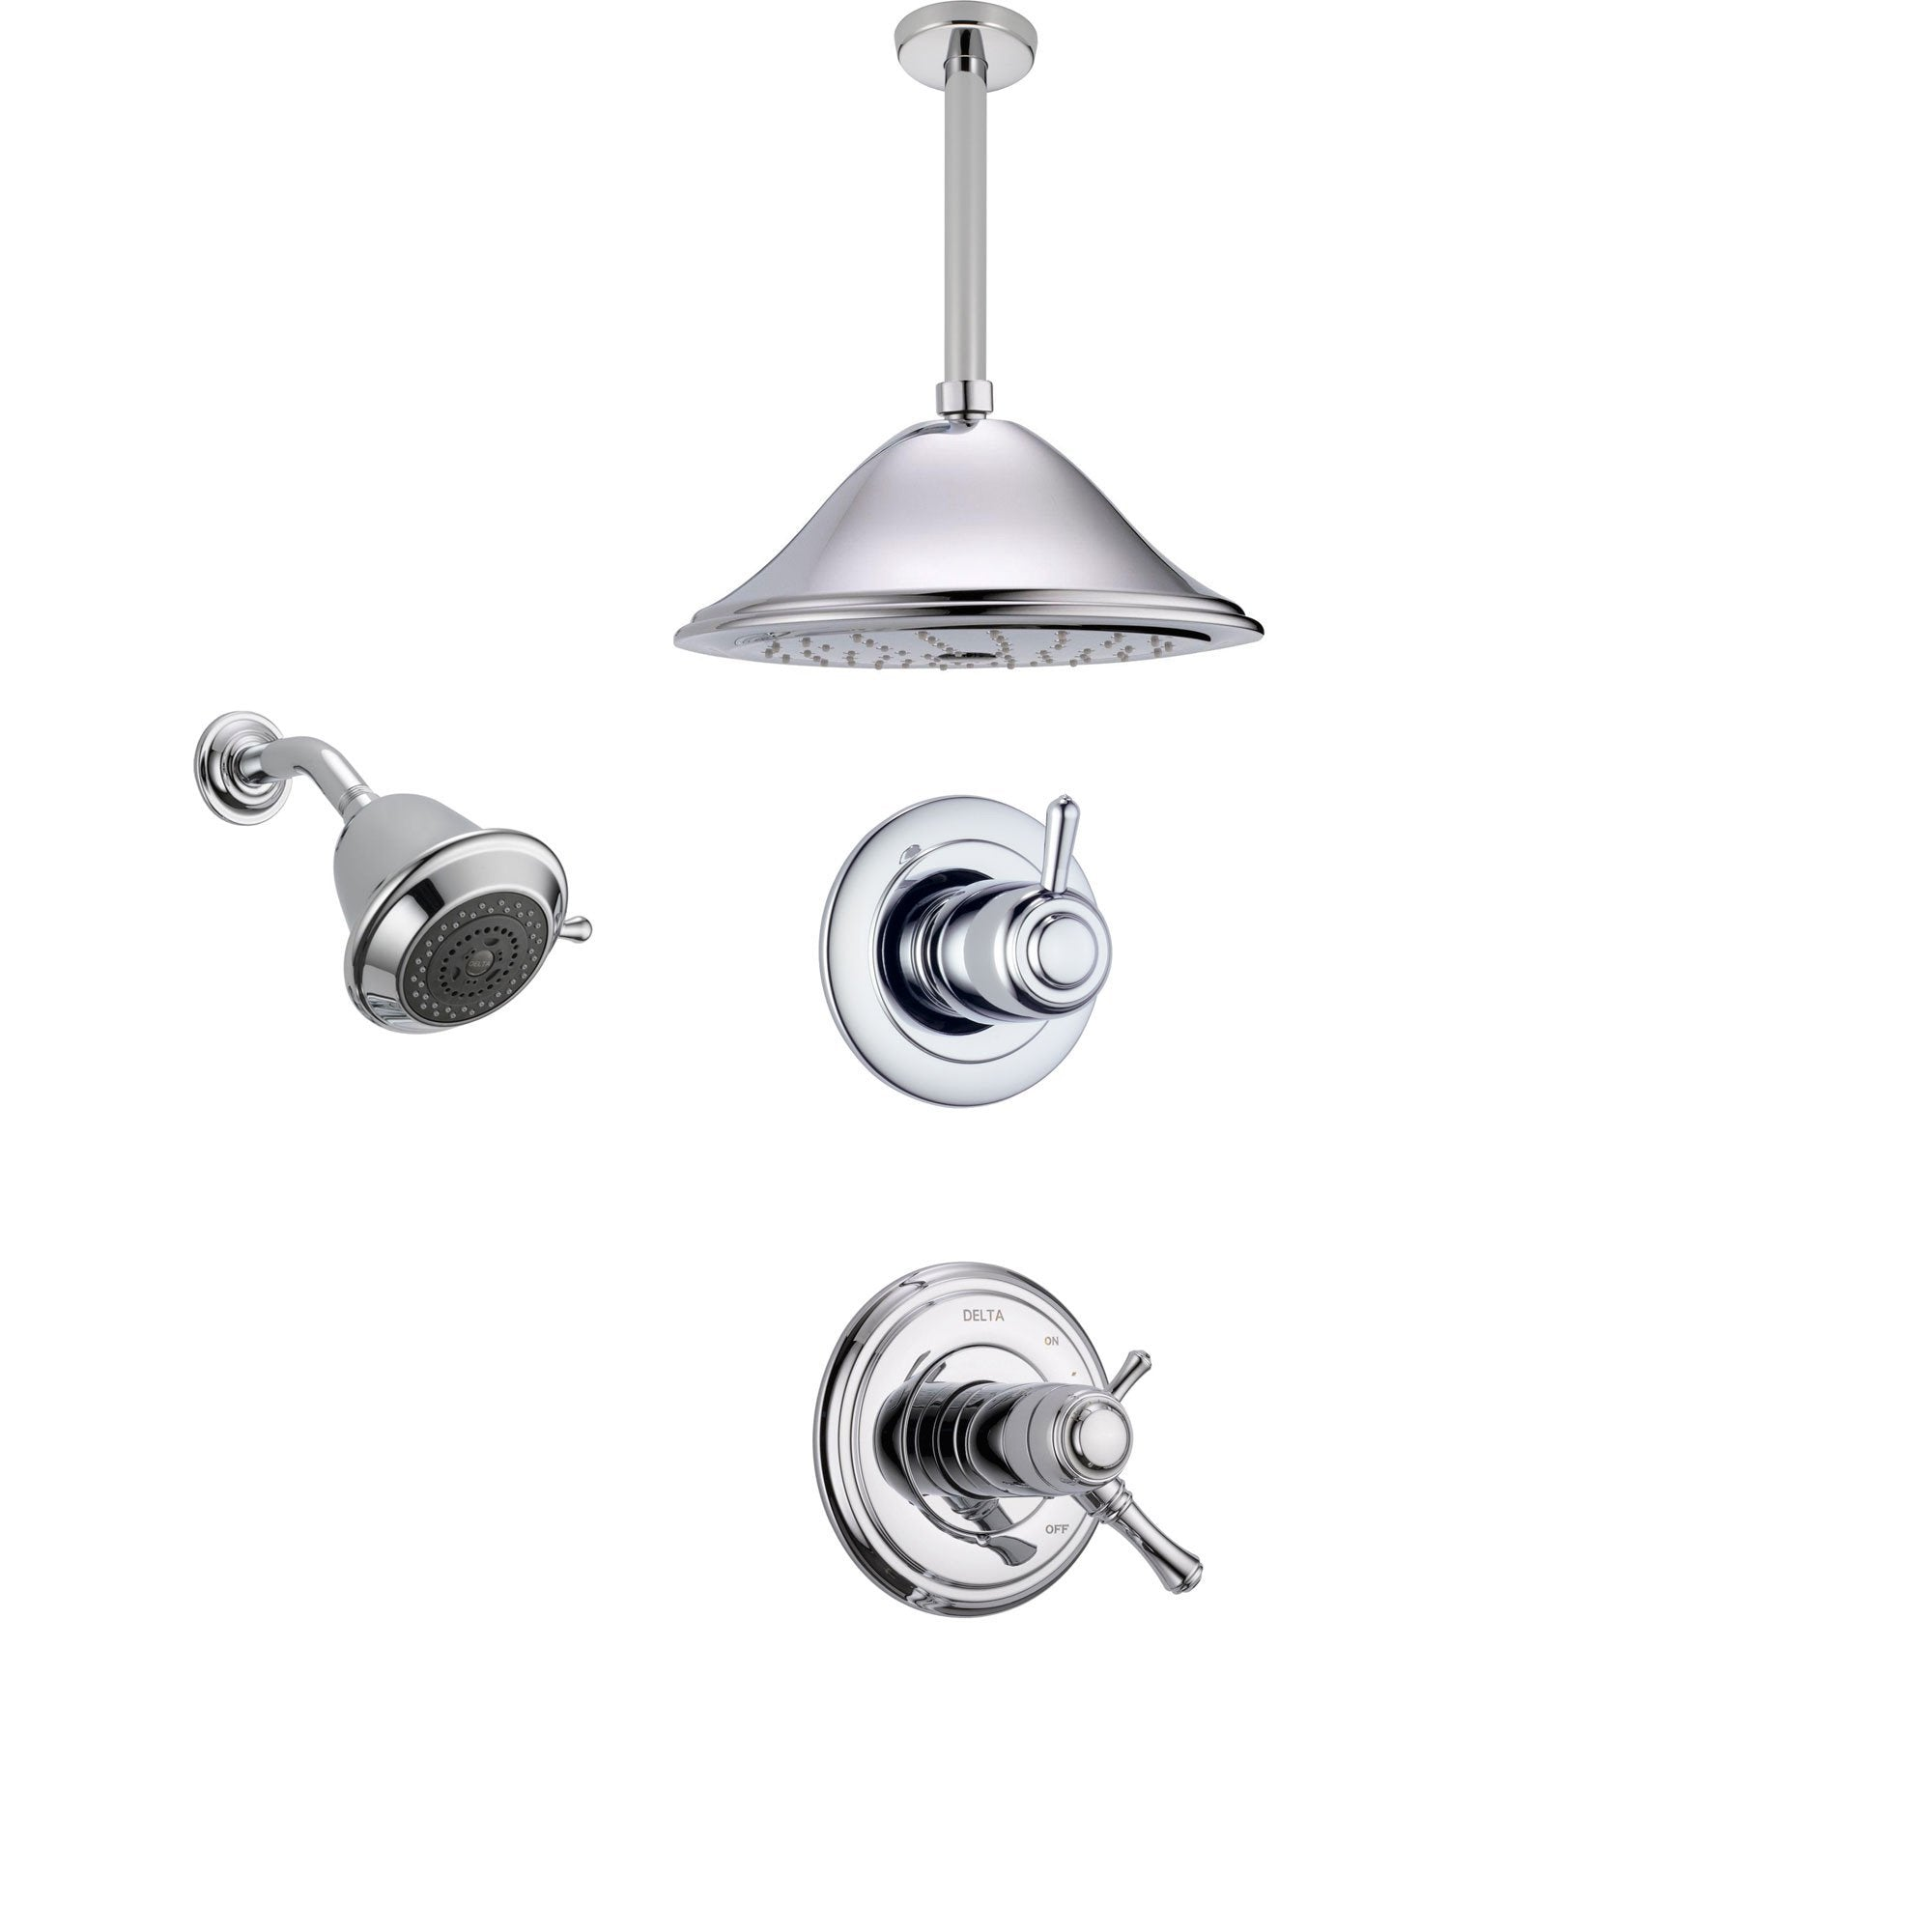 Delta Cassidy Chrome Shower System with Thermostatic Shower Handle, 3-setting Diverter, Large Ceiling Mount Rain Showerhead, and Wall Mount Showerhead SS17T9783